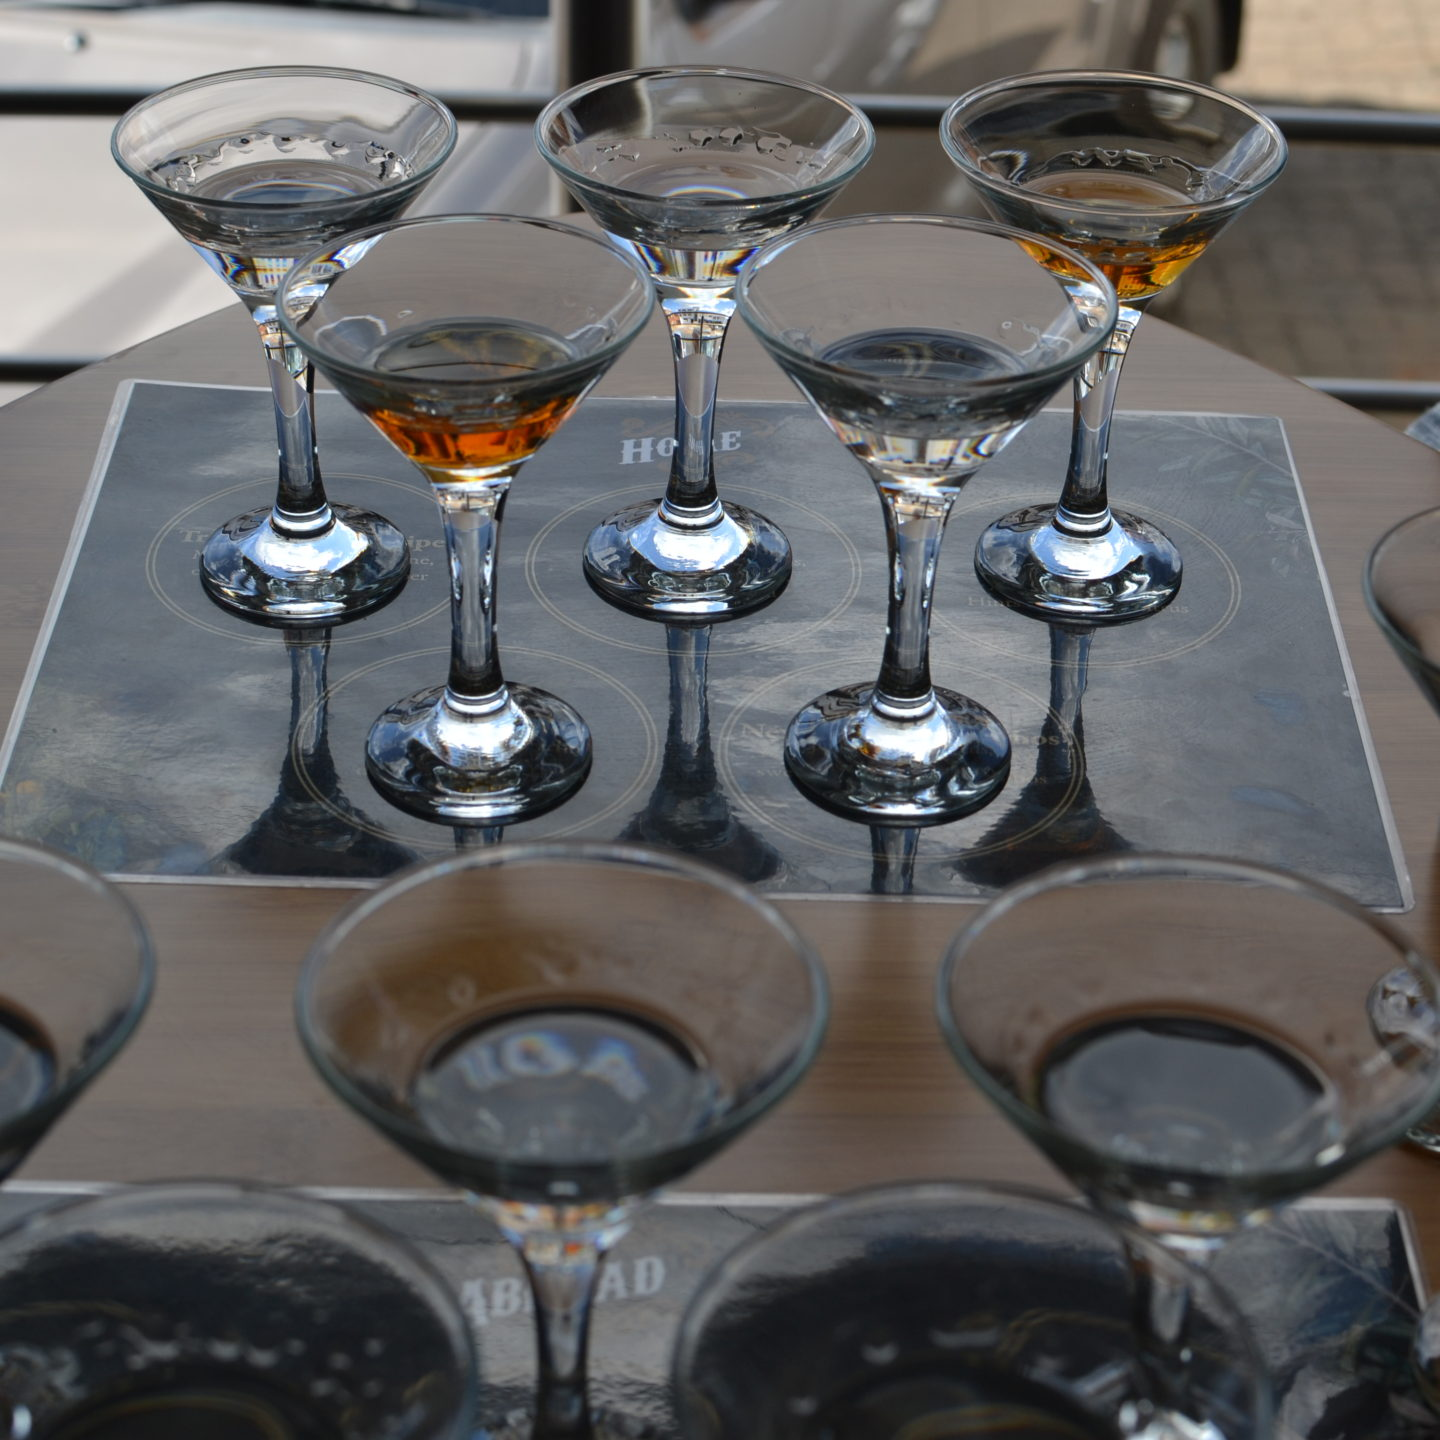 Carbon Bistro: A Flight of Fancy